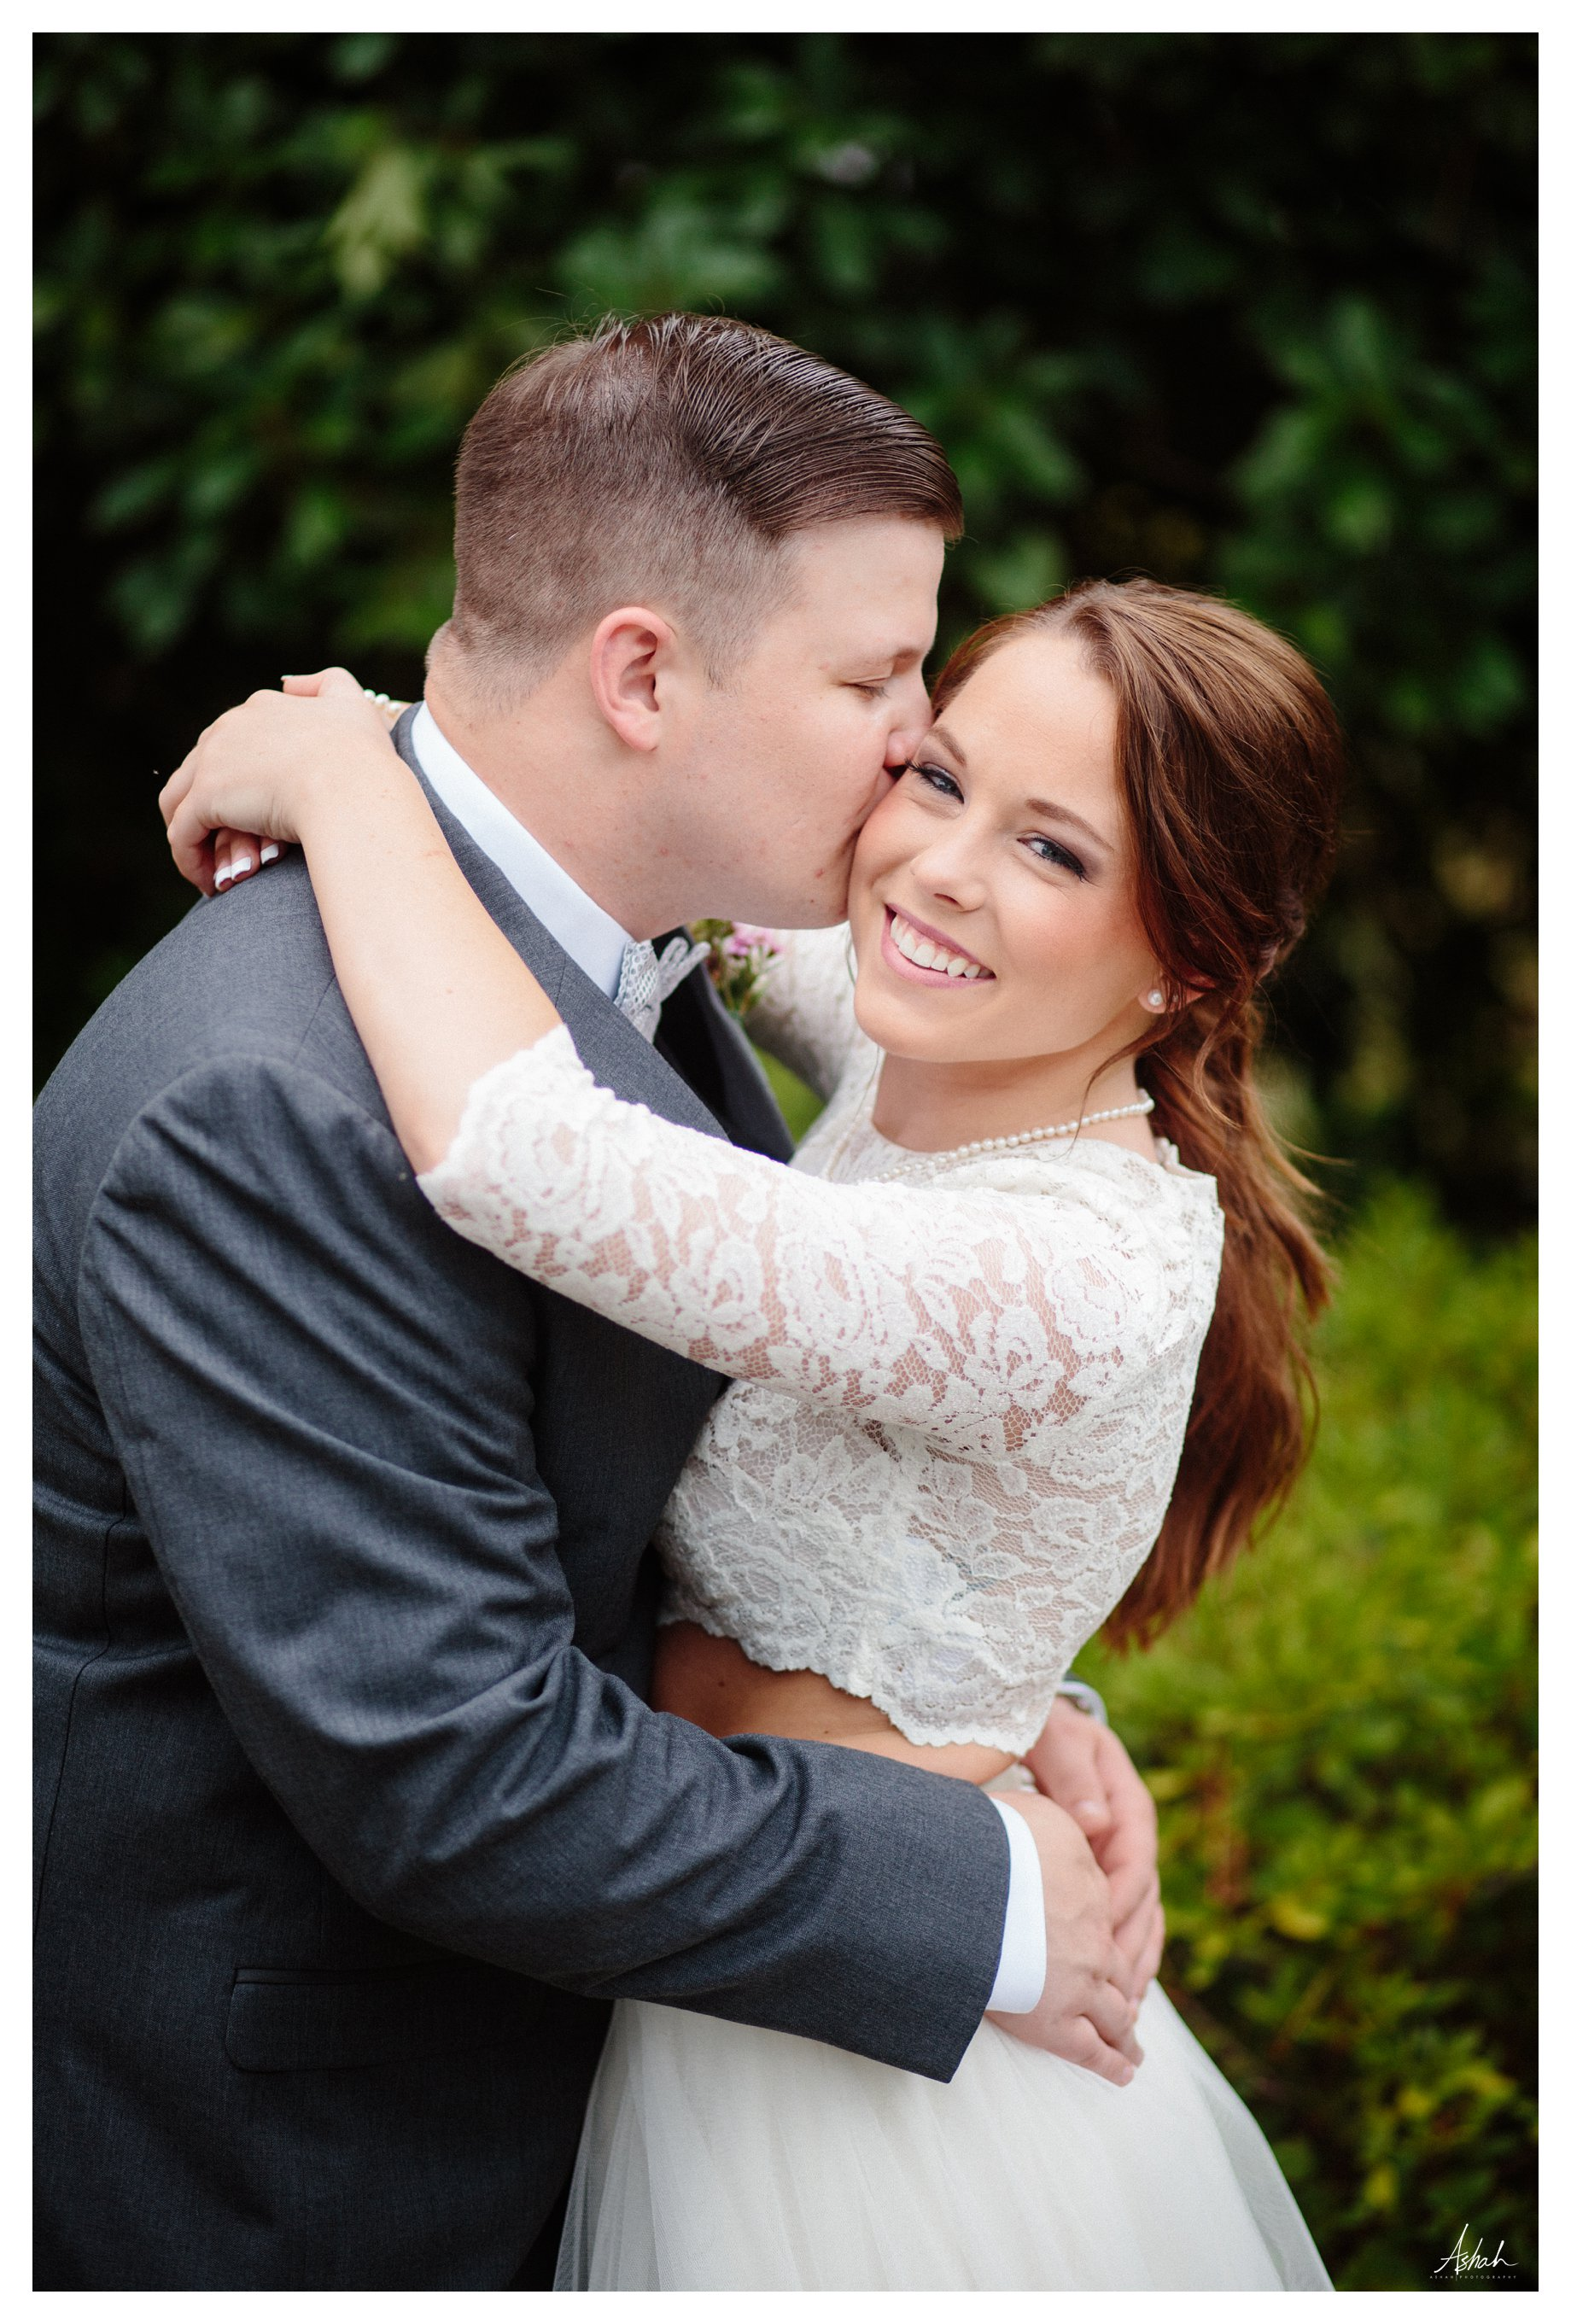 Pure Joy -  - Dublin Wedding Photographer